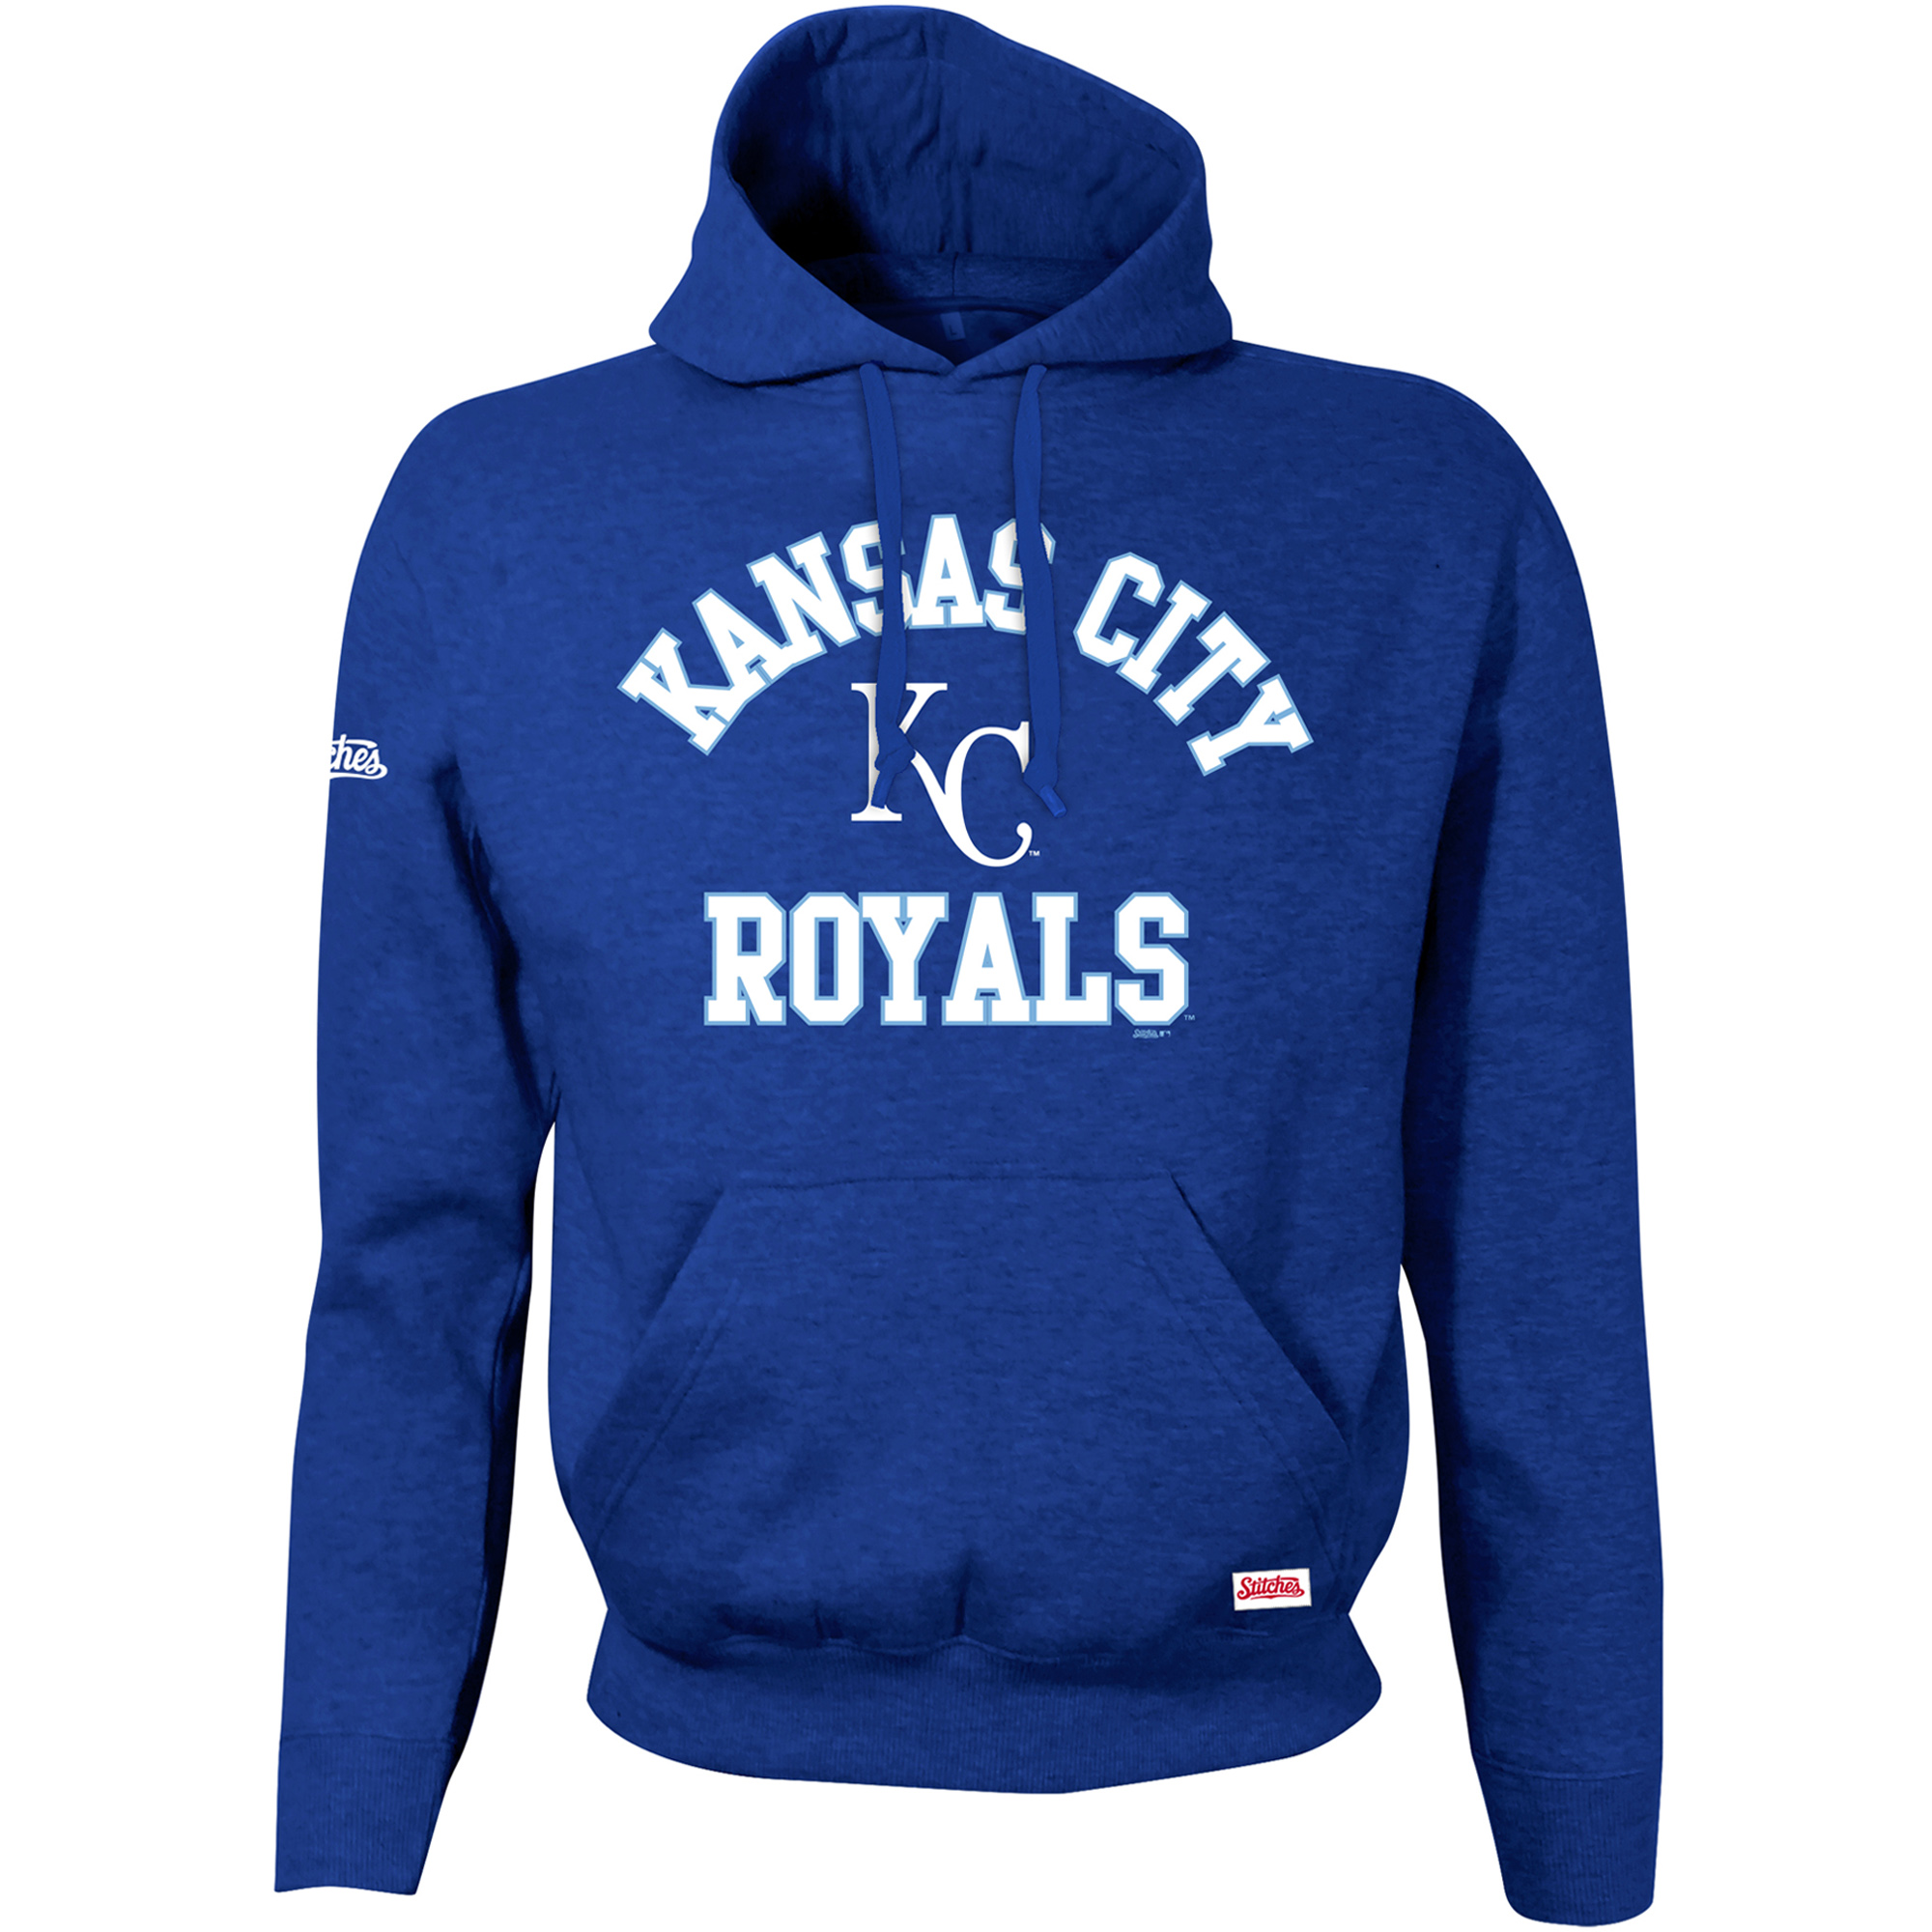 Kansas City Royals Stitches Youth Fleece Pullover Hoodie - Royal